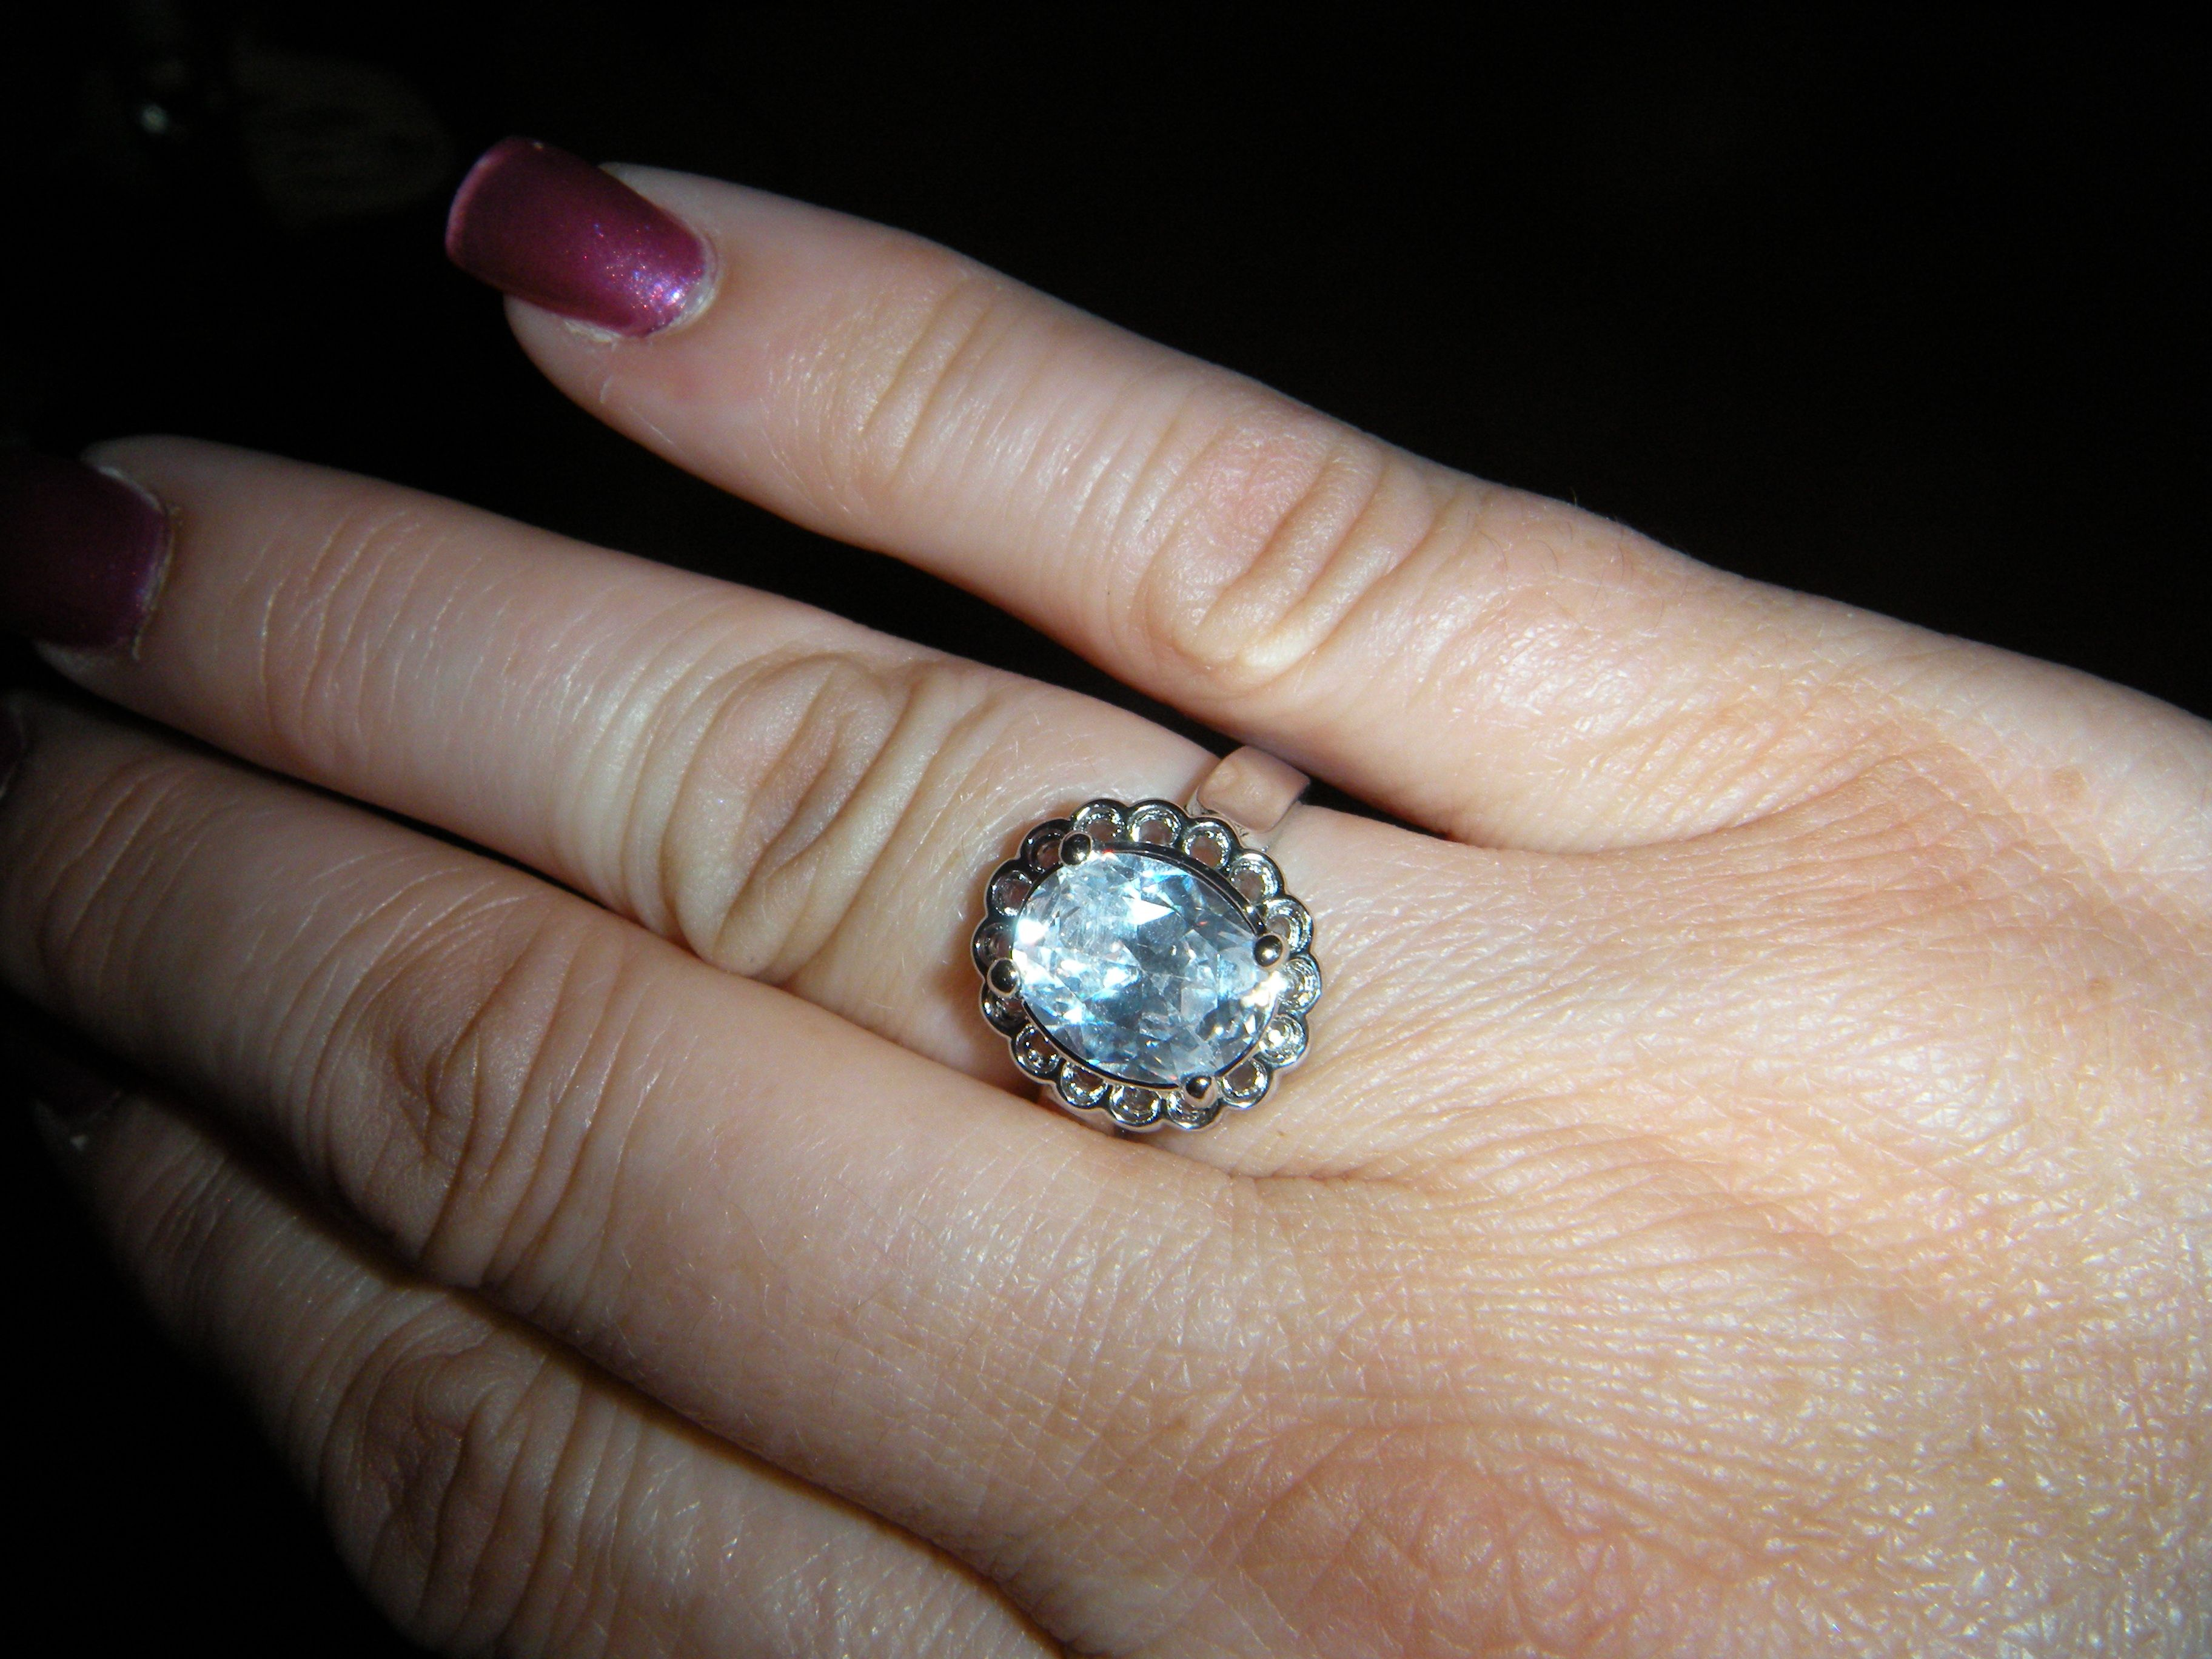 Diamond Candle Ring from a Cupcake Candle - White Topaz